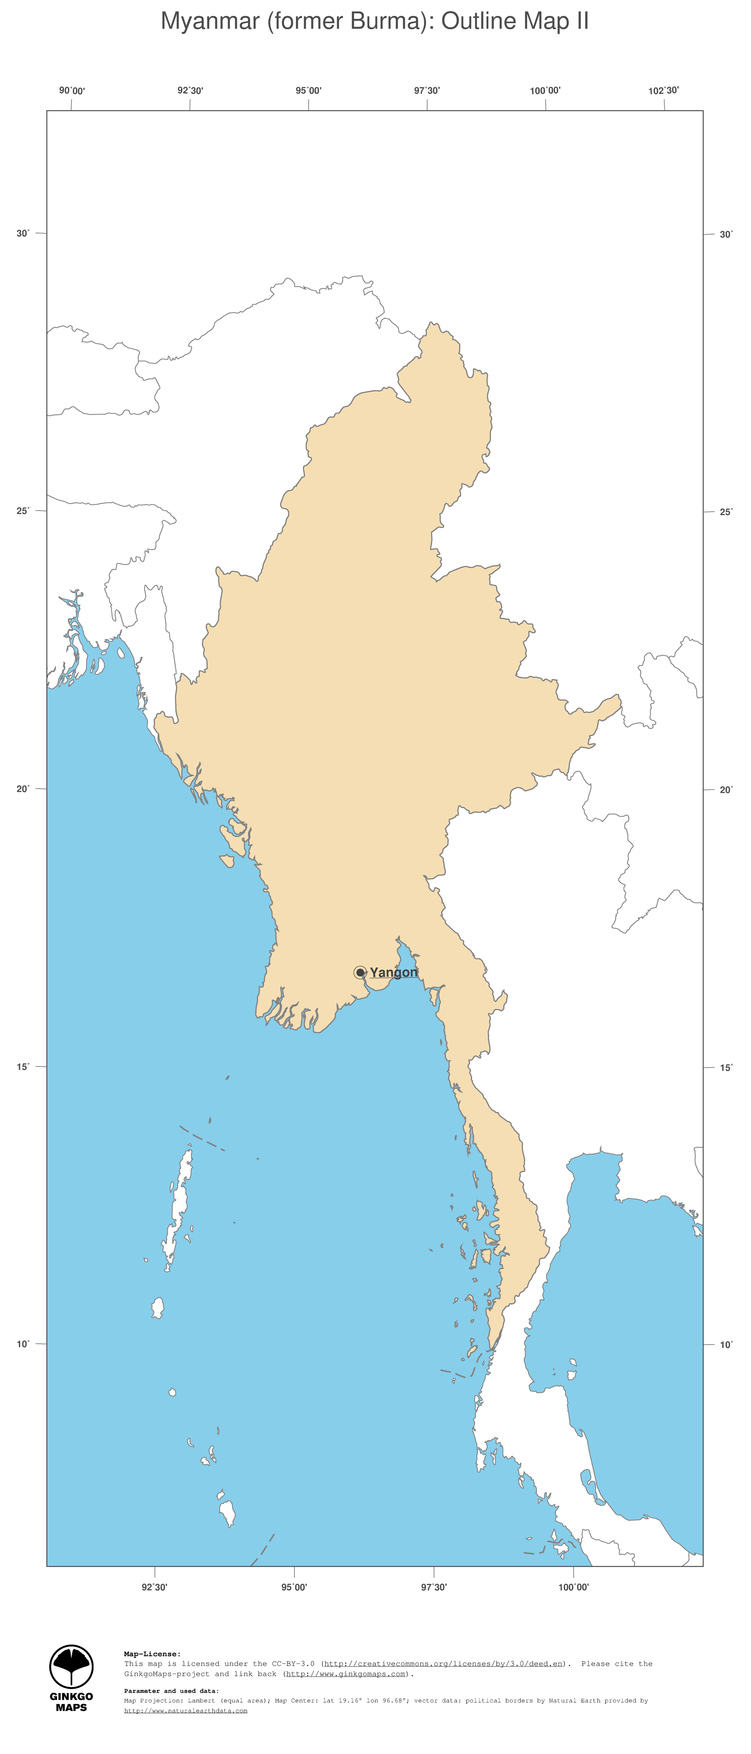 Myanmar On Map Of Asia.Map Myanmar Former Burma Ginkgomaps Continent Asia Region